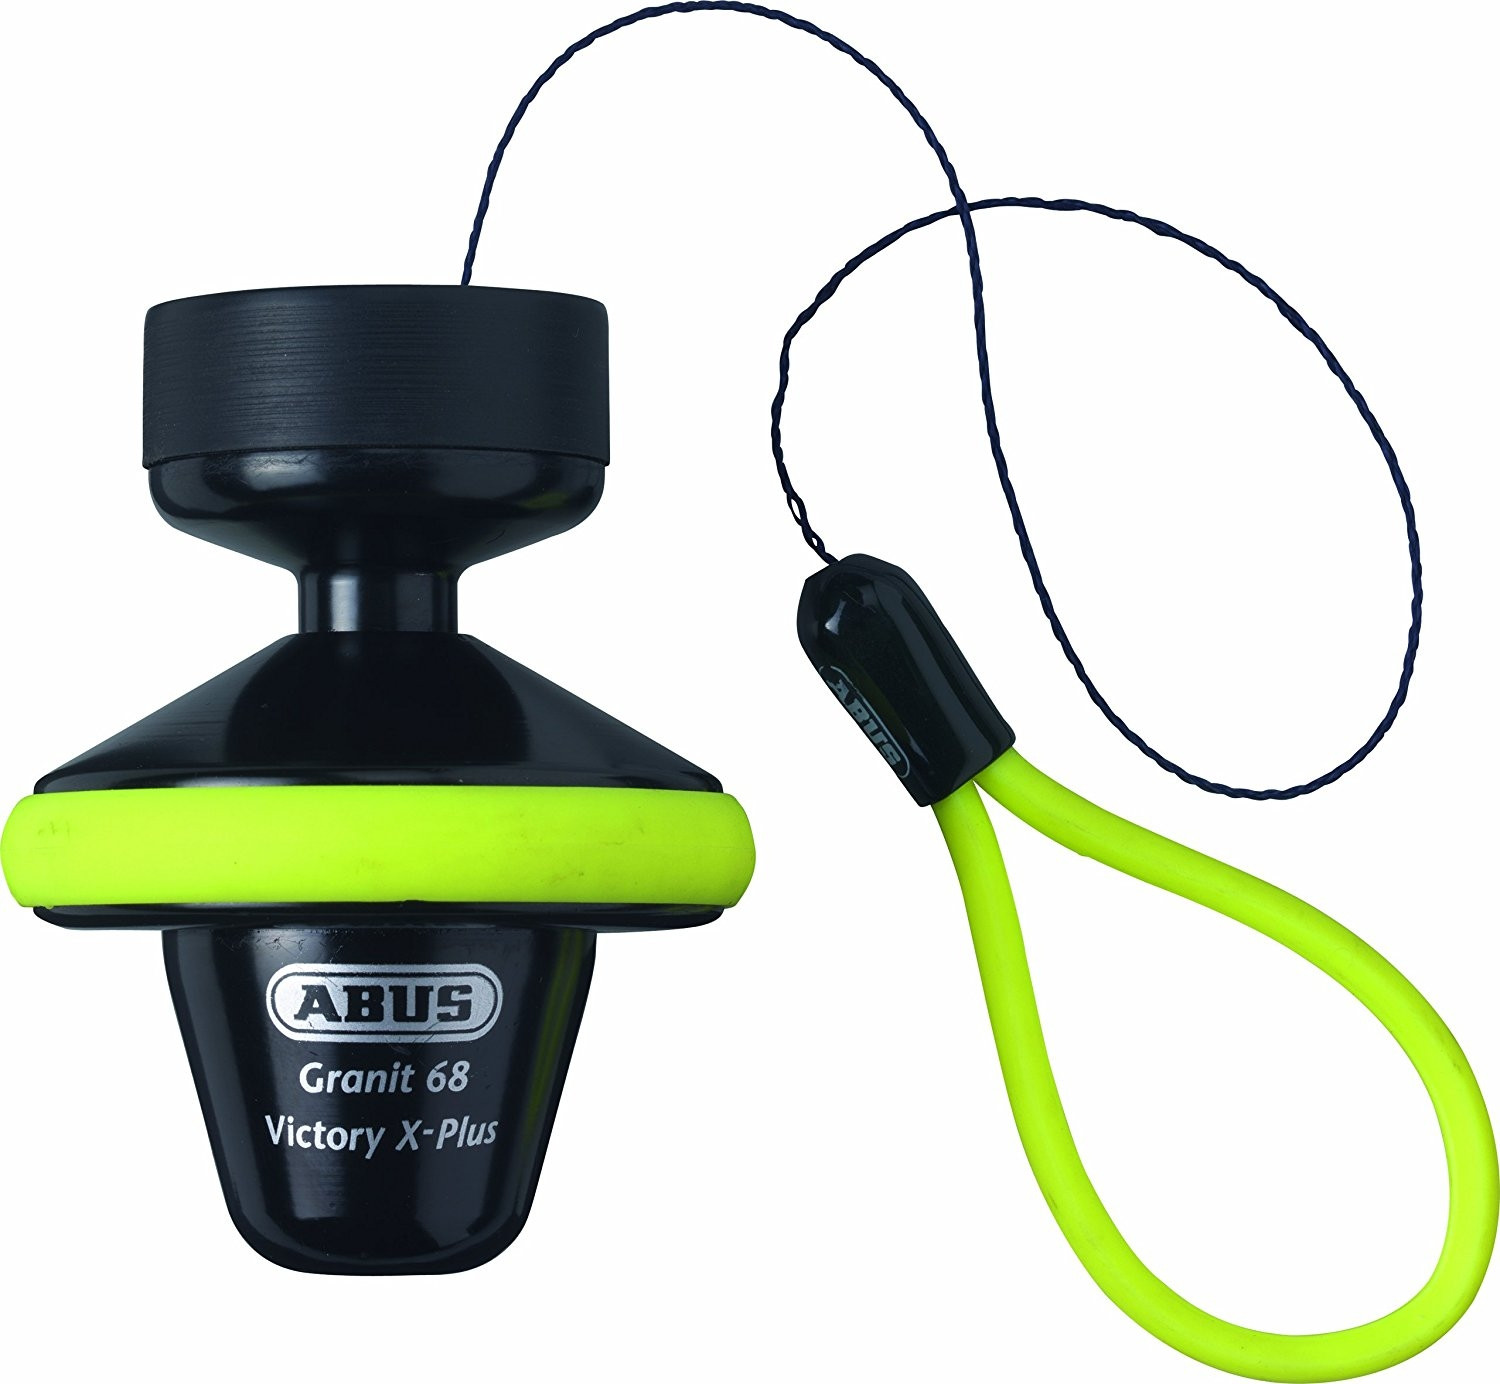 Bloque disque Abus SRA Granit Victory X Plus 68 Roll up